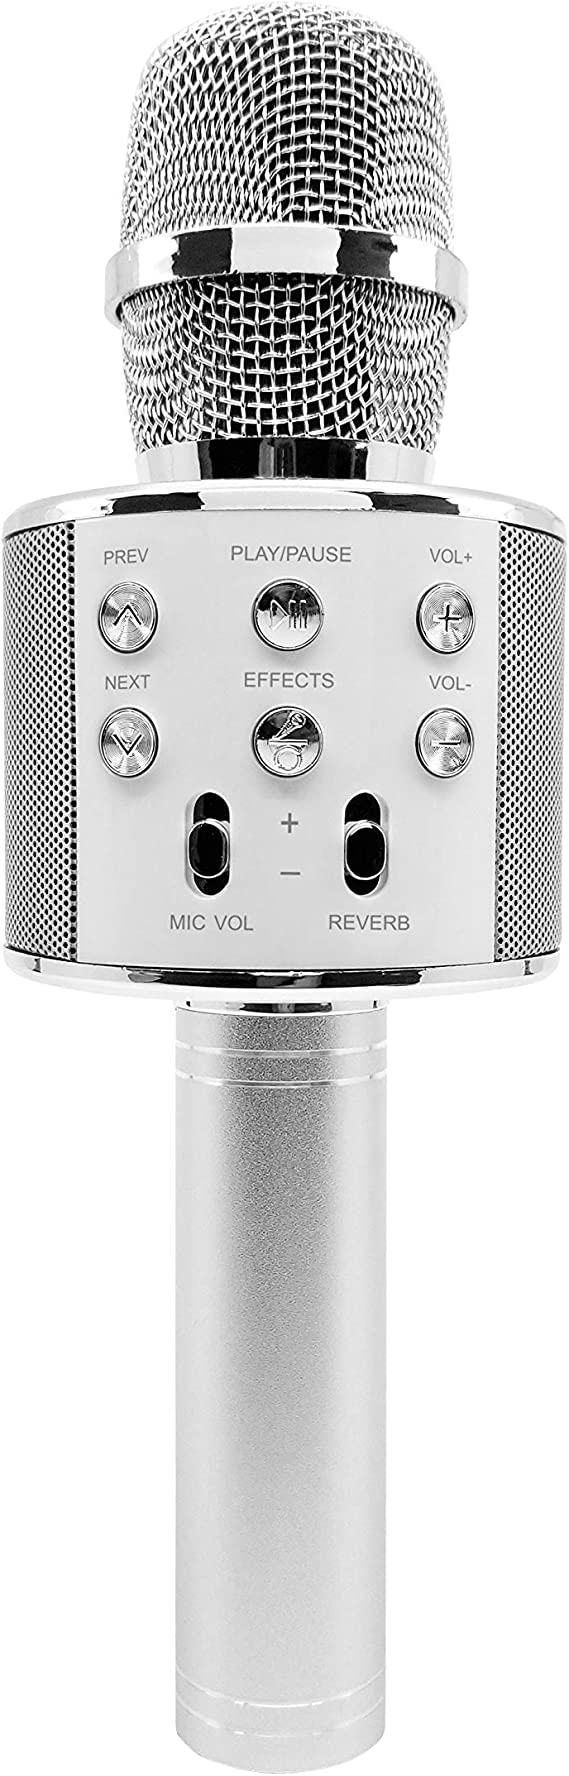 MR. MICROPHONE As Seen on TV - Wireless Karaoke Microphone